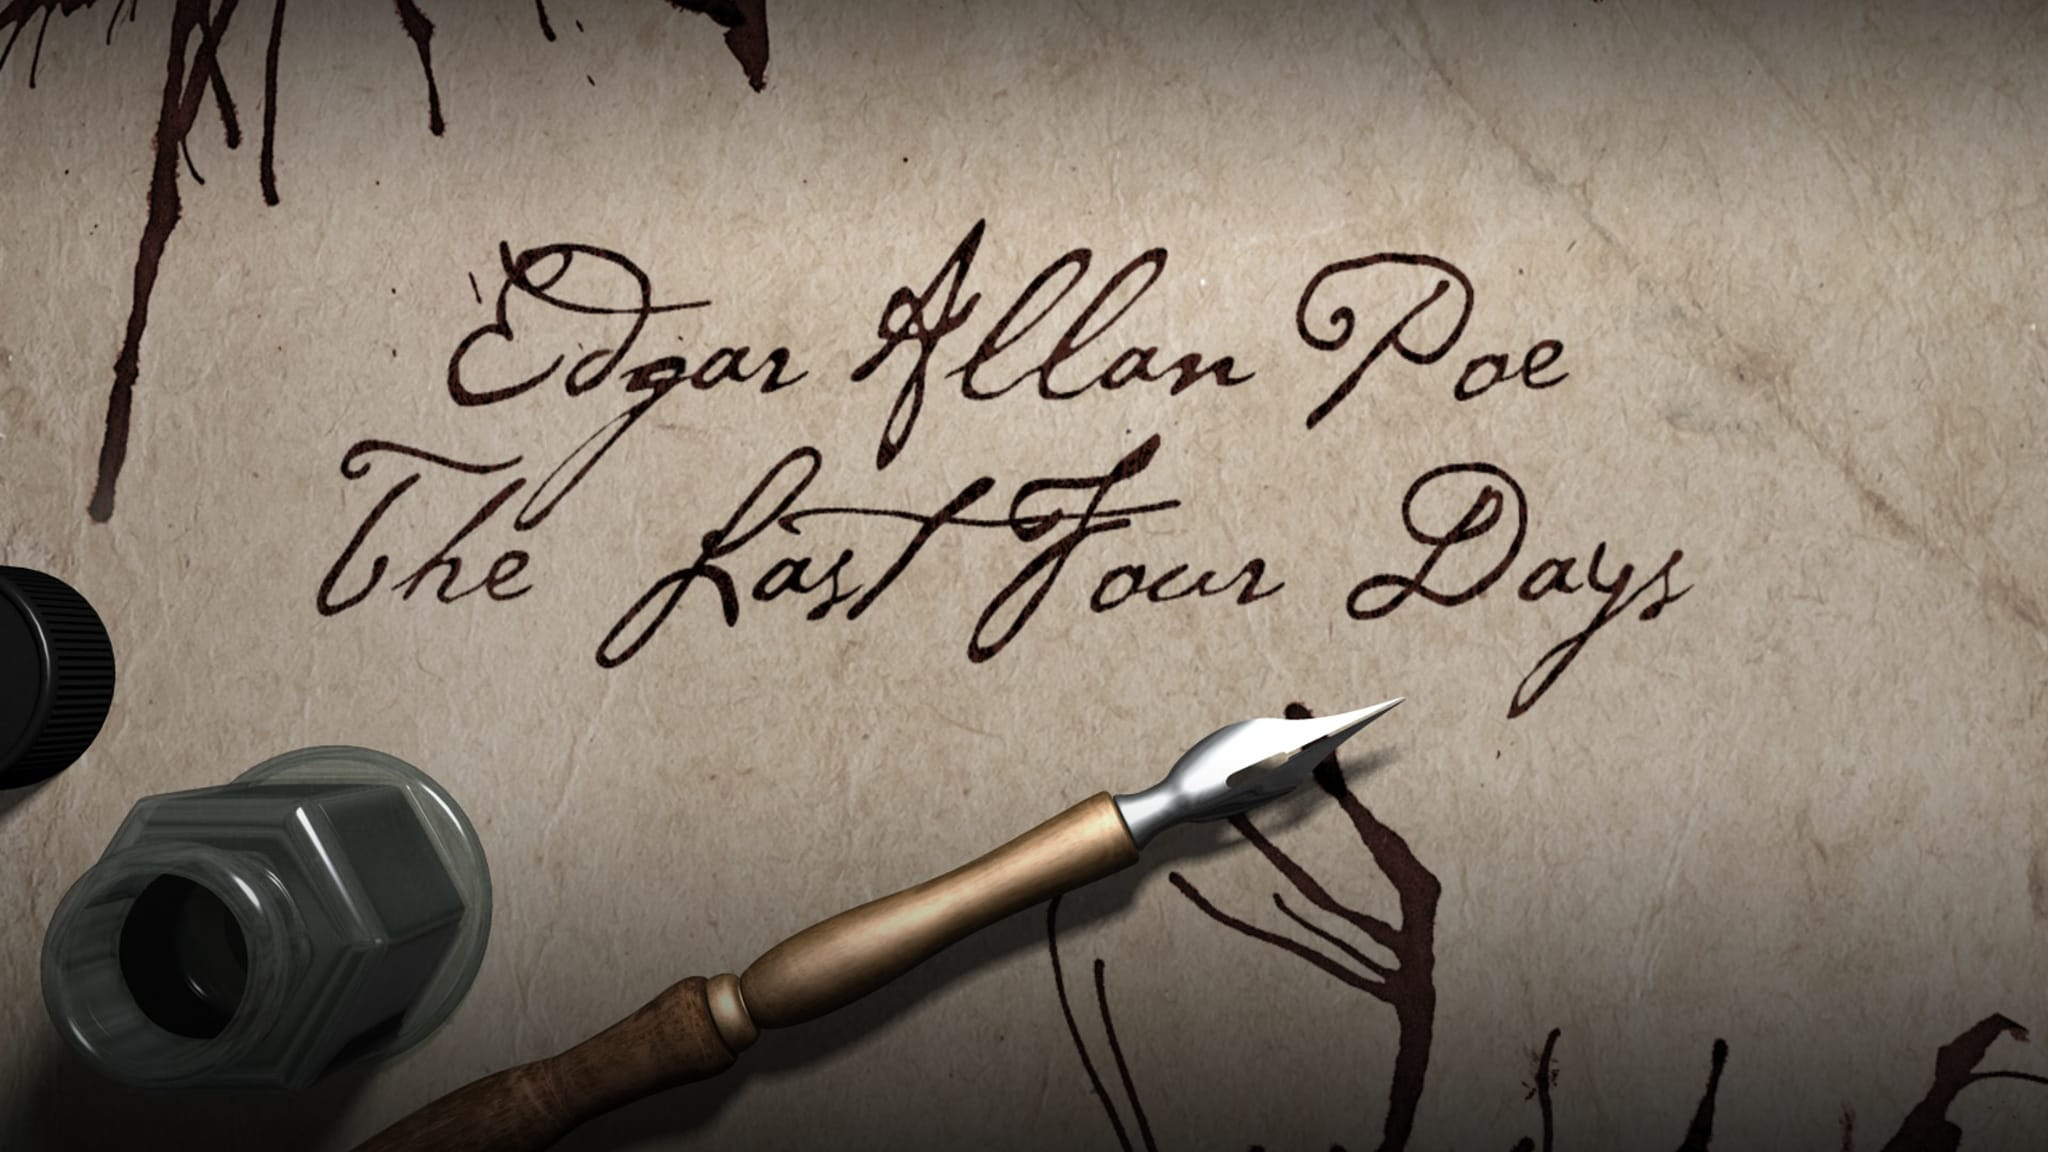 Rai Scuola Inglese Edgar Allan Poe - The Last Four Days - Chapter 5